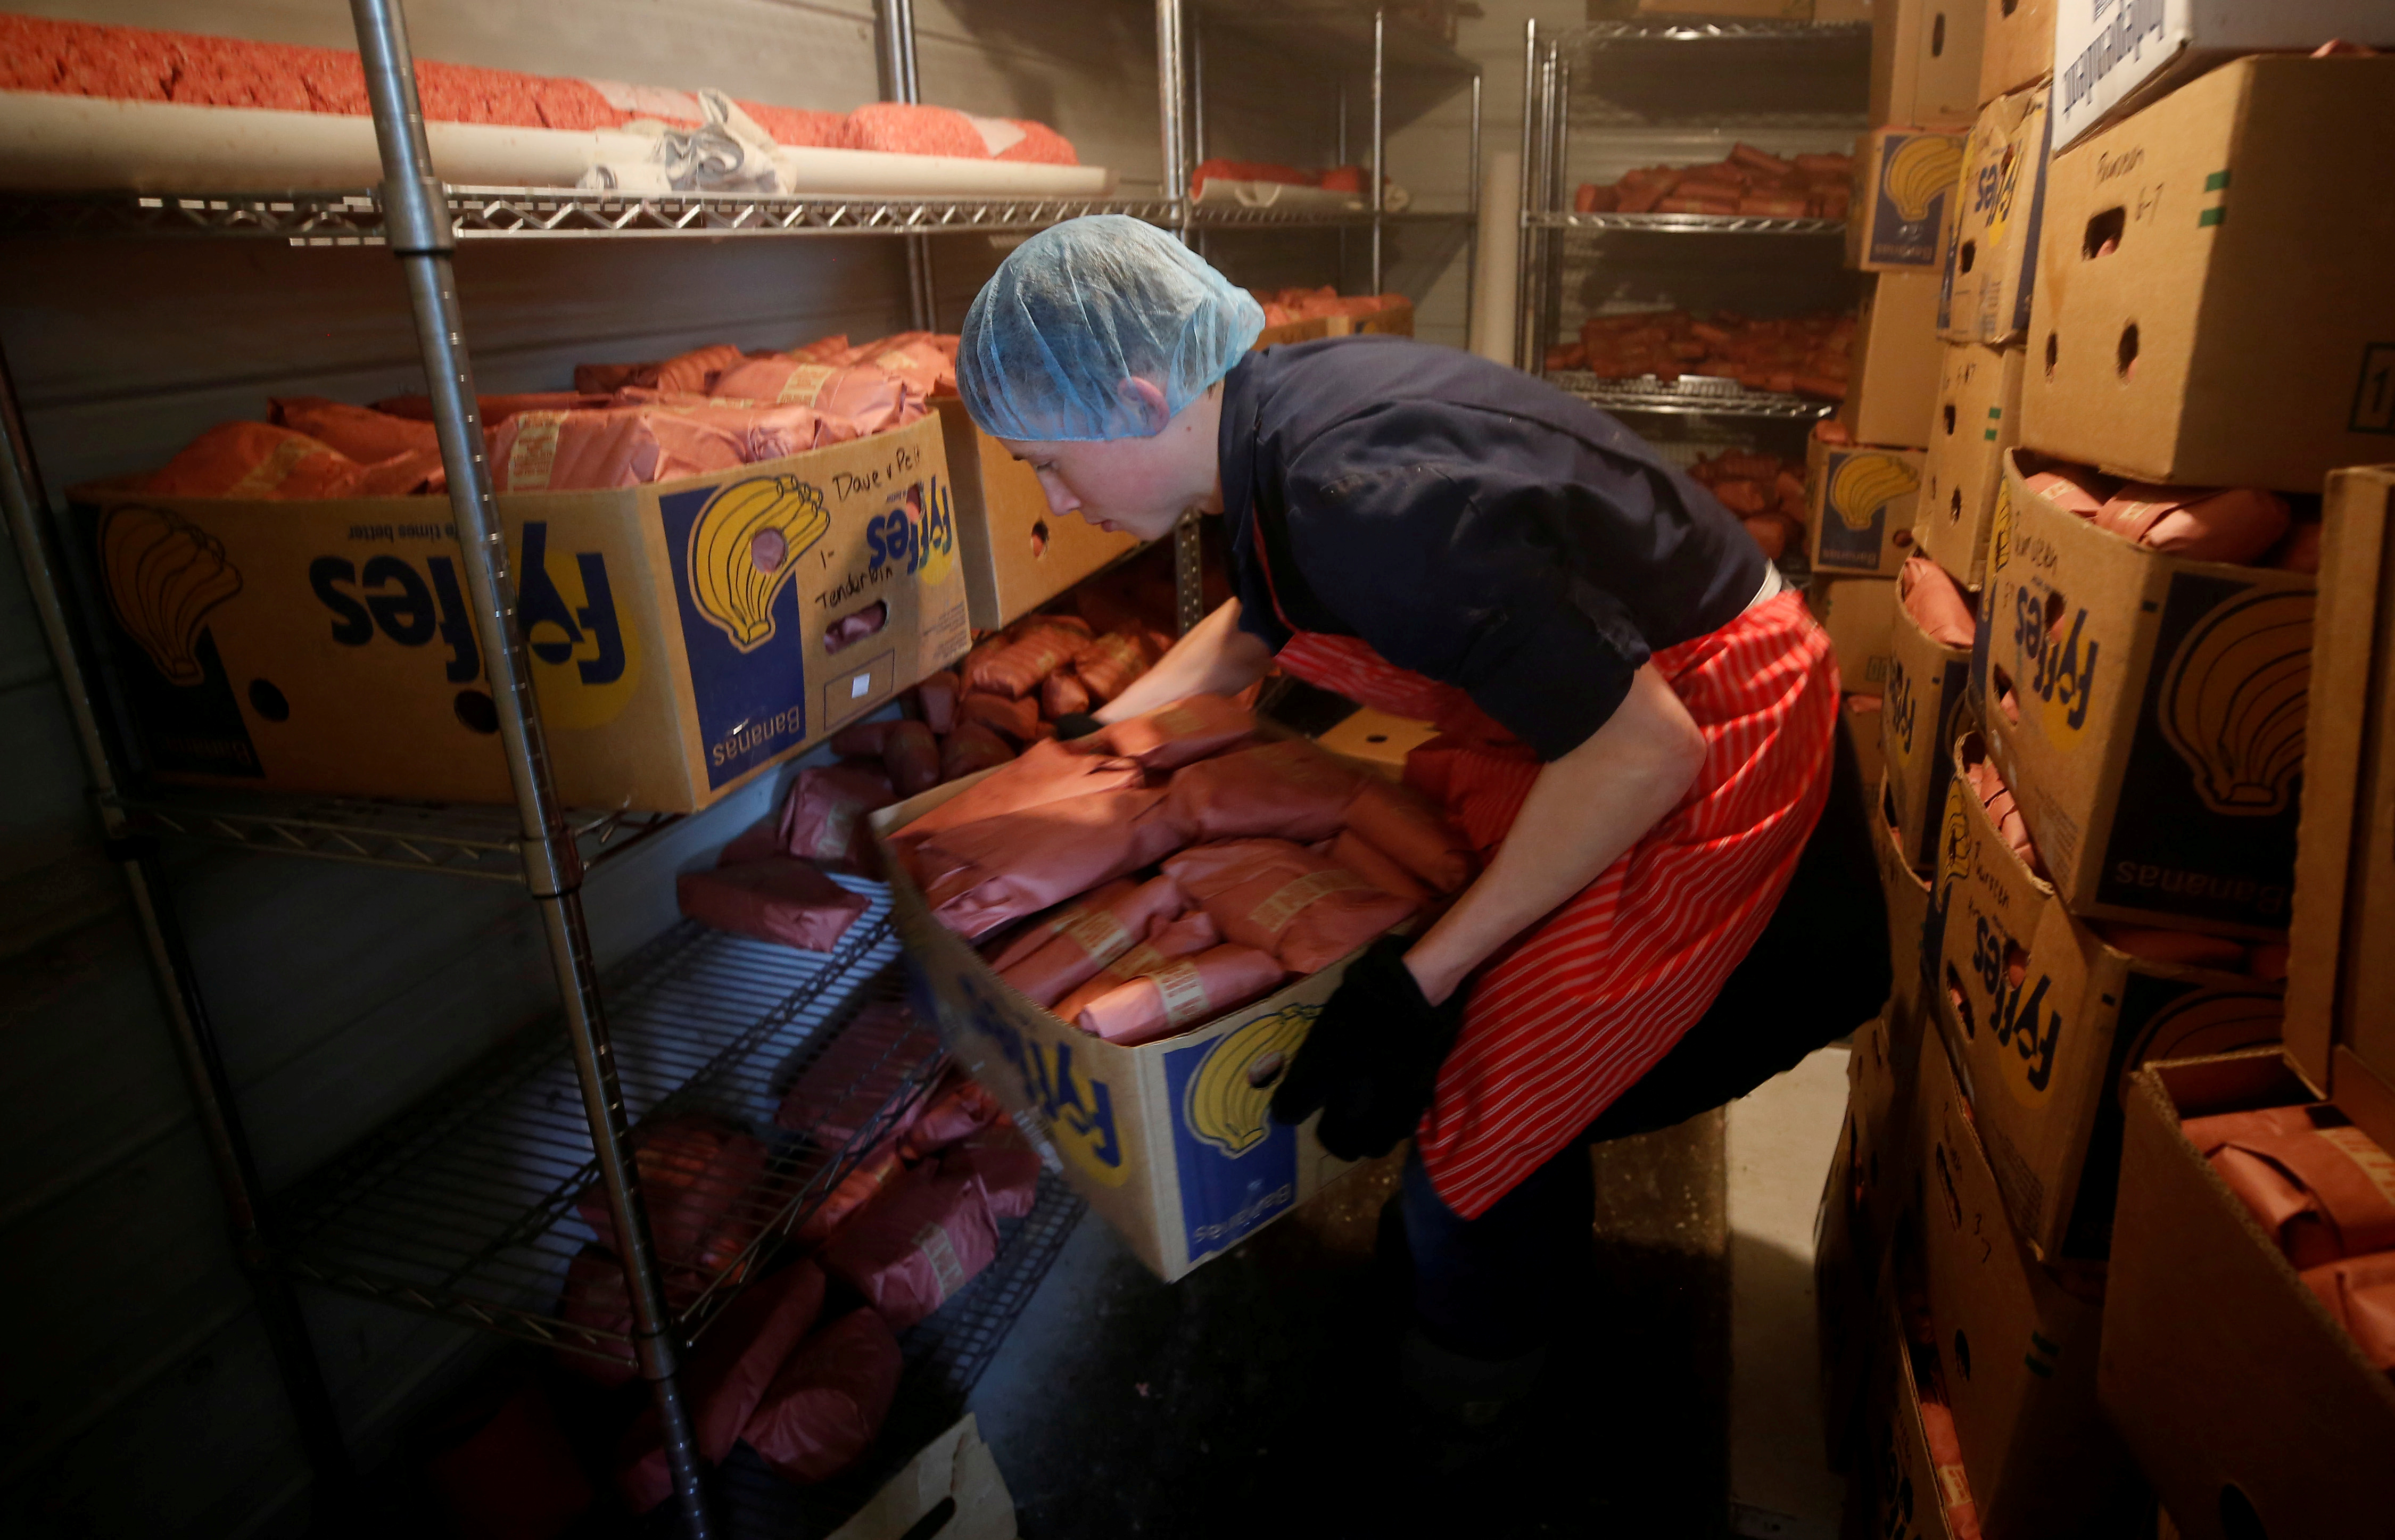 Butcher Allan vande Bruinhorst freezes beef as part of his uncle's business which allows farmers to circumvent the supply chain blockage caused by coronavirus disease (COVID-19) outbreaks at meatpacking plants, in Picture Butte, Alberta, Canada June 17, 2020. REUTERS/Todd Korol/File Photo